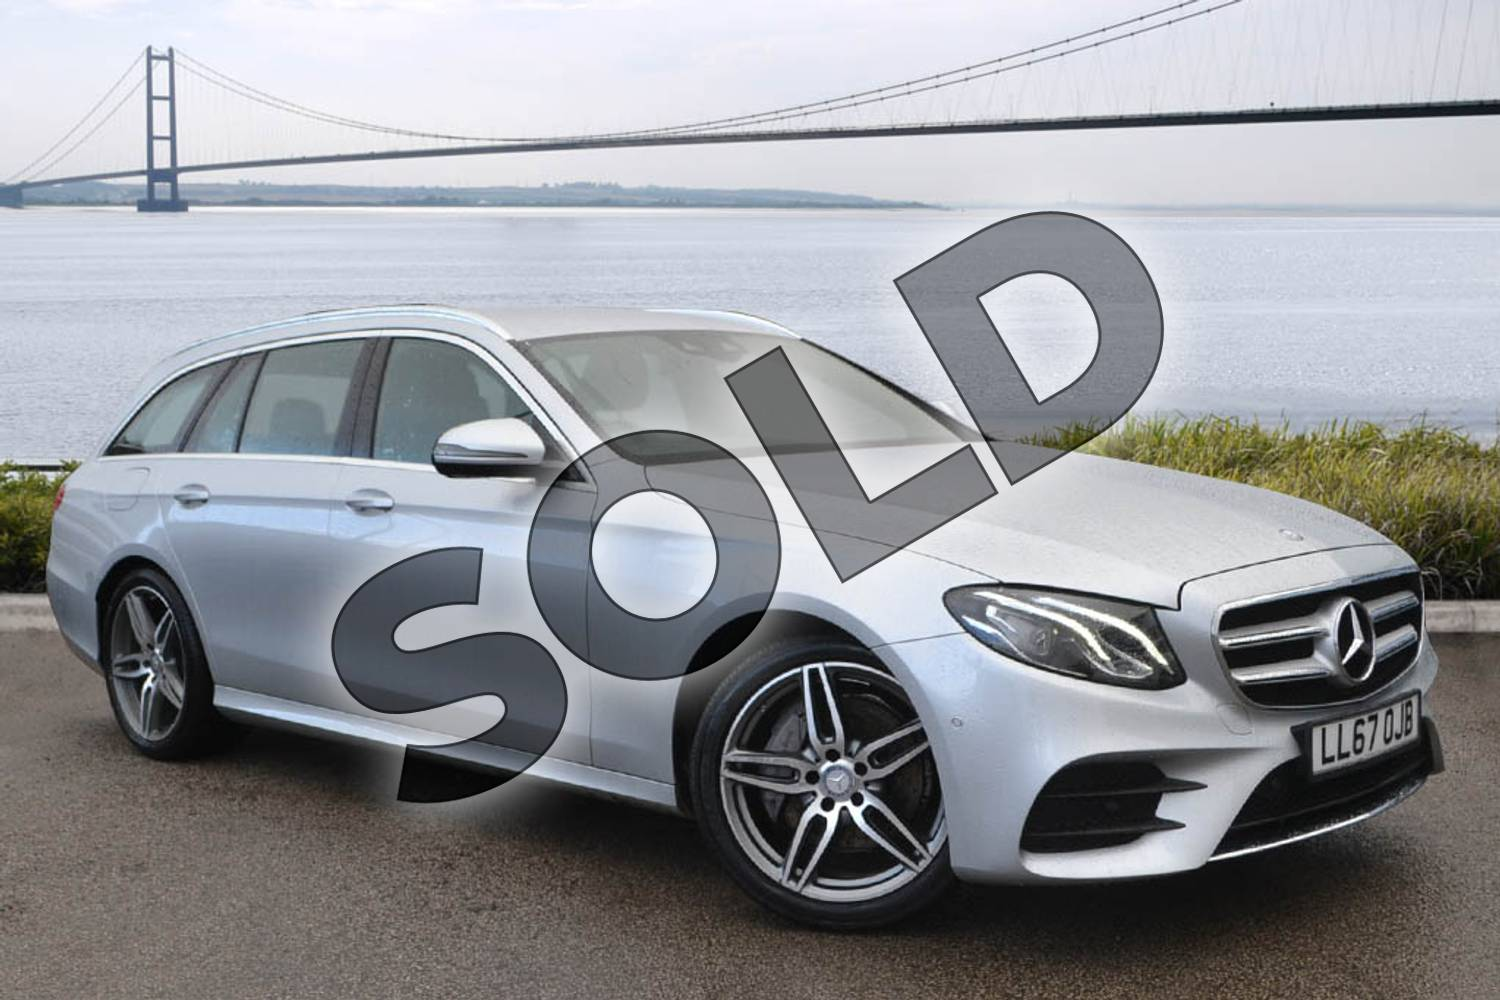 2017 Mercedes-Benz E Class Diesel Estate E220d AMG Line 5dr 9G-Tronic in Iridium Silver Metallic at Mercedes-Benz of Hull